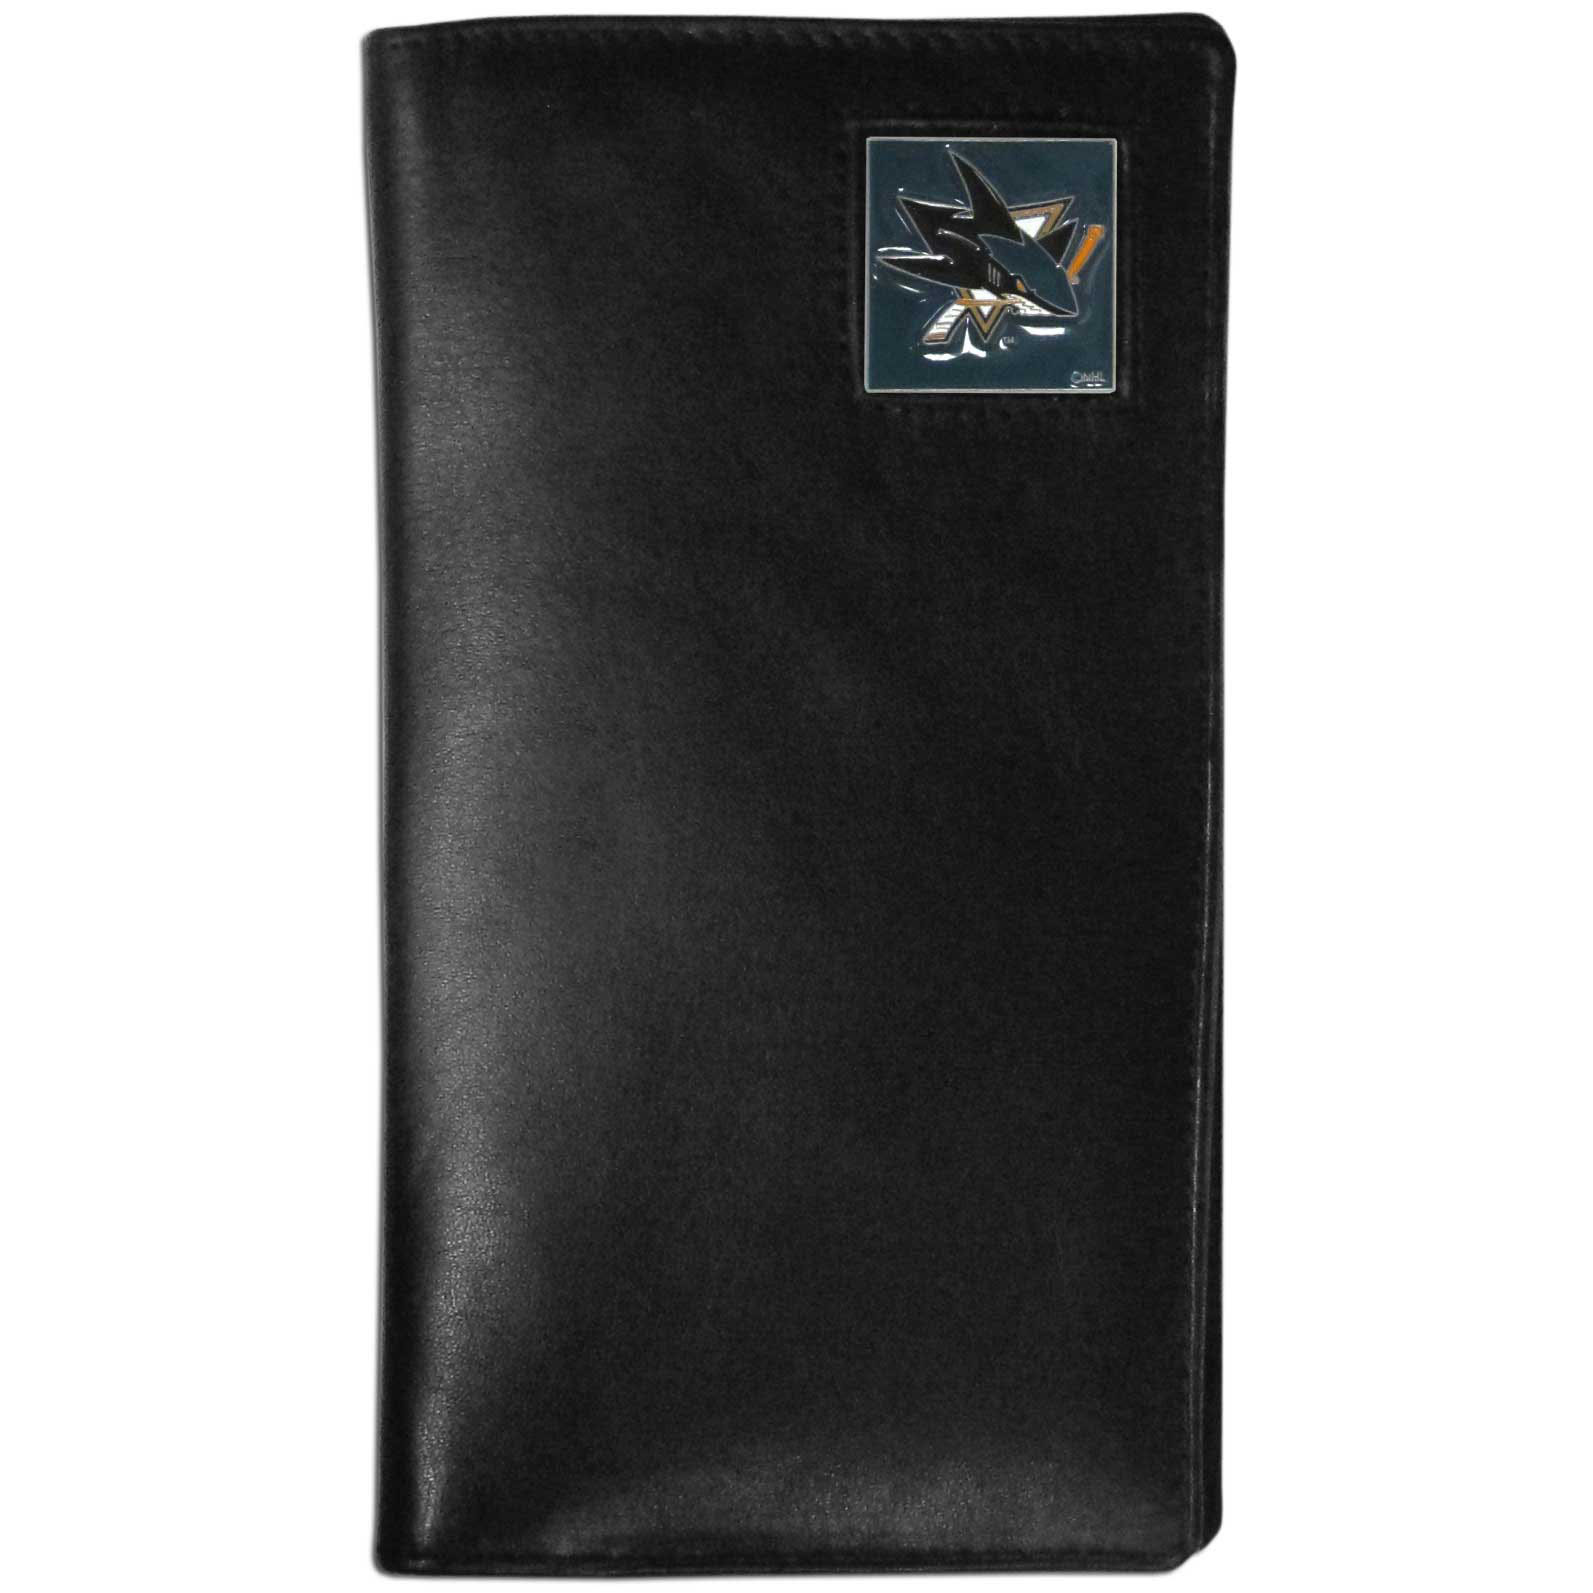 San Jose Sharks Tall Leather Wallet - This officially licensed San Jose Sharks tall leather wallet cover is made of high quality leather with a fully cast metal San Jose Sharks emblem with enameled San Jose Sharks color detail. The cover fits both side and top loaded checks and includes a large zippered pocket, windowed ID slot, numerous credit card slots and billfold pocket. Thank you for visiting CrazedOutSports